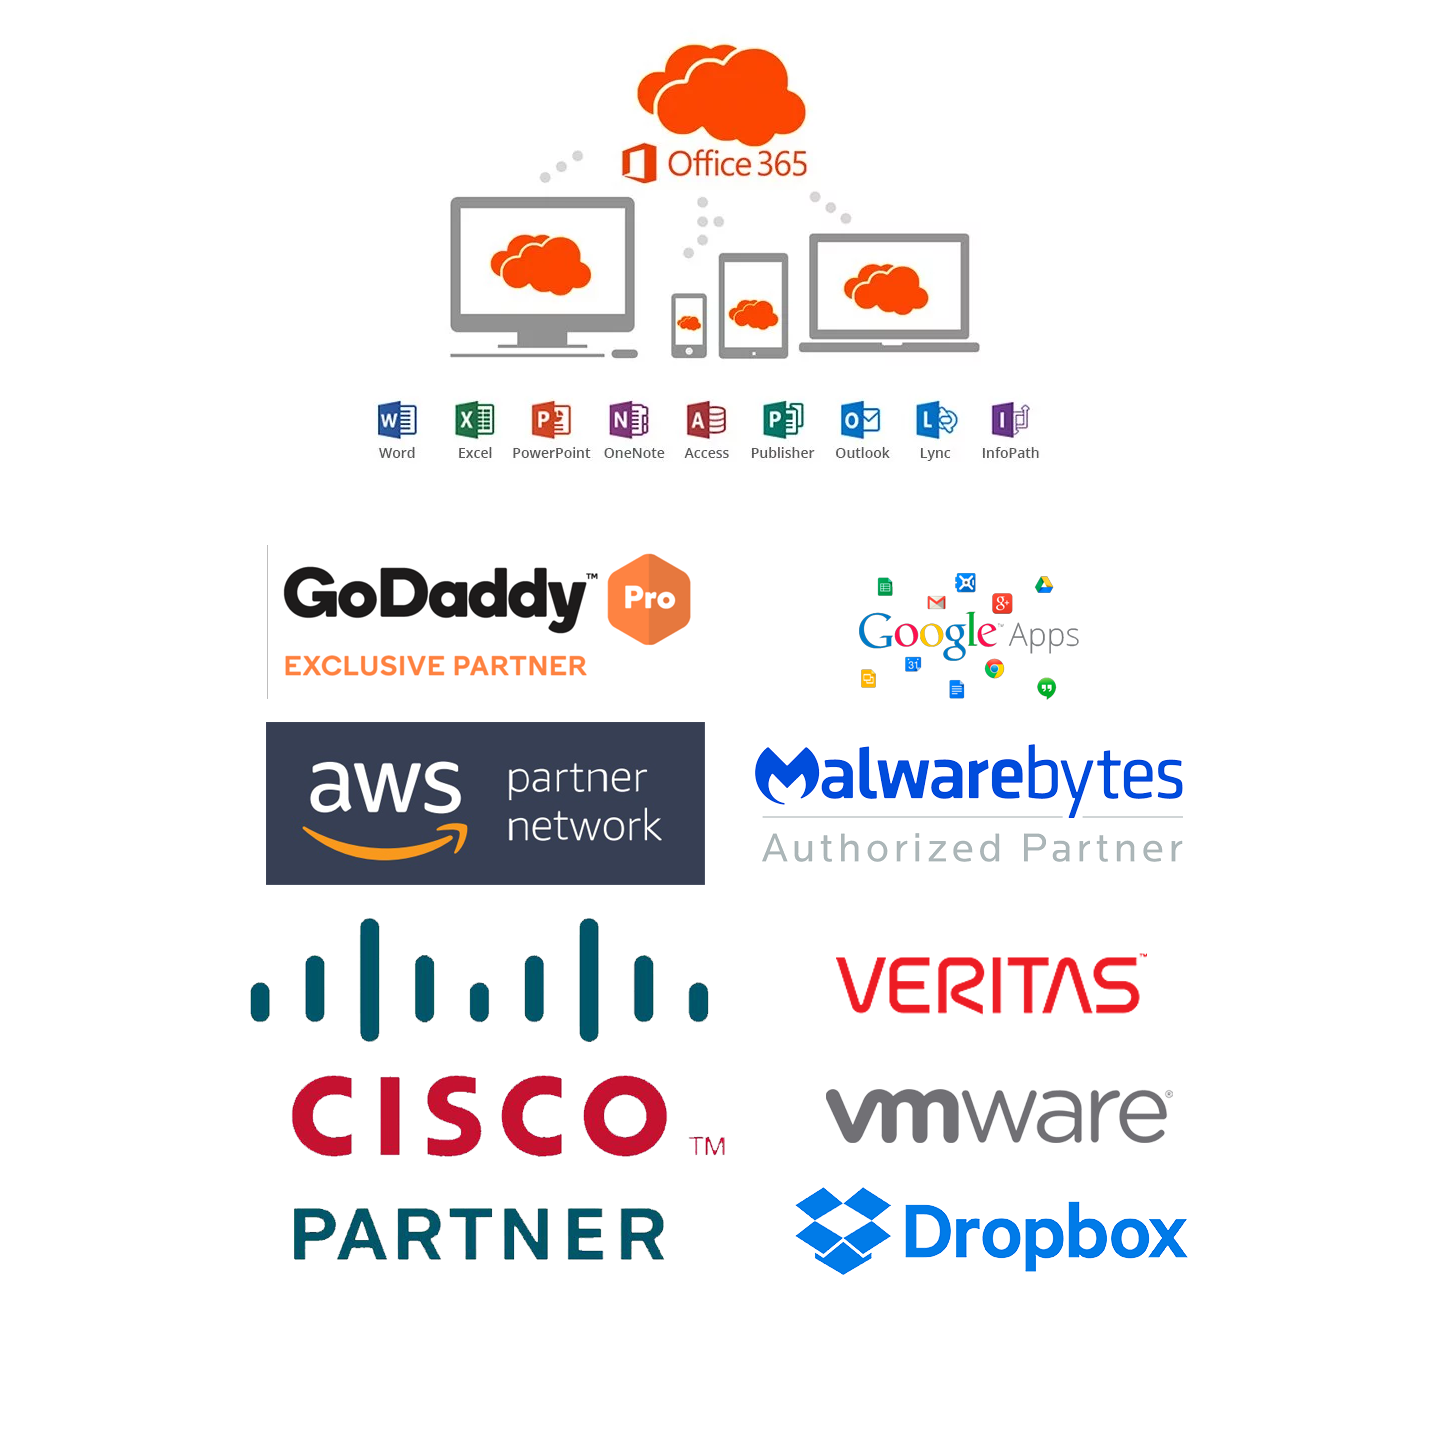 oem partner list containing partnerships with office 365 godaddy aws cisco meraki veritas malwarebytes vmware and dropbox